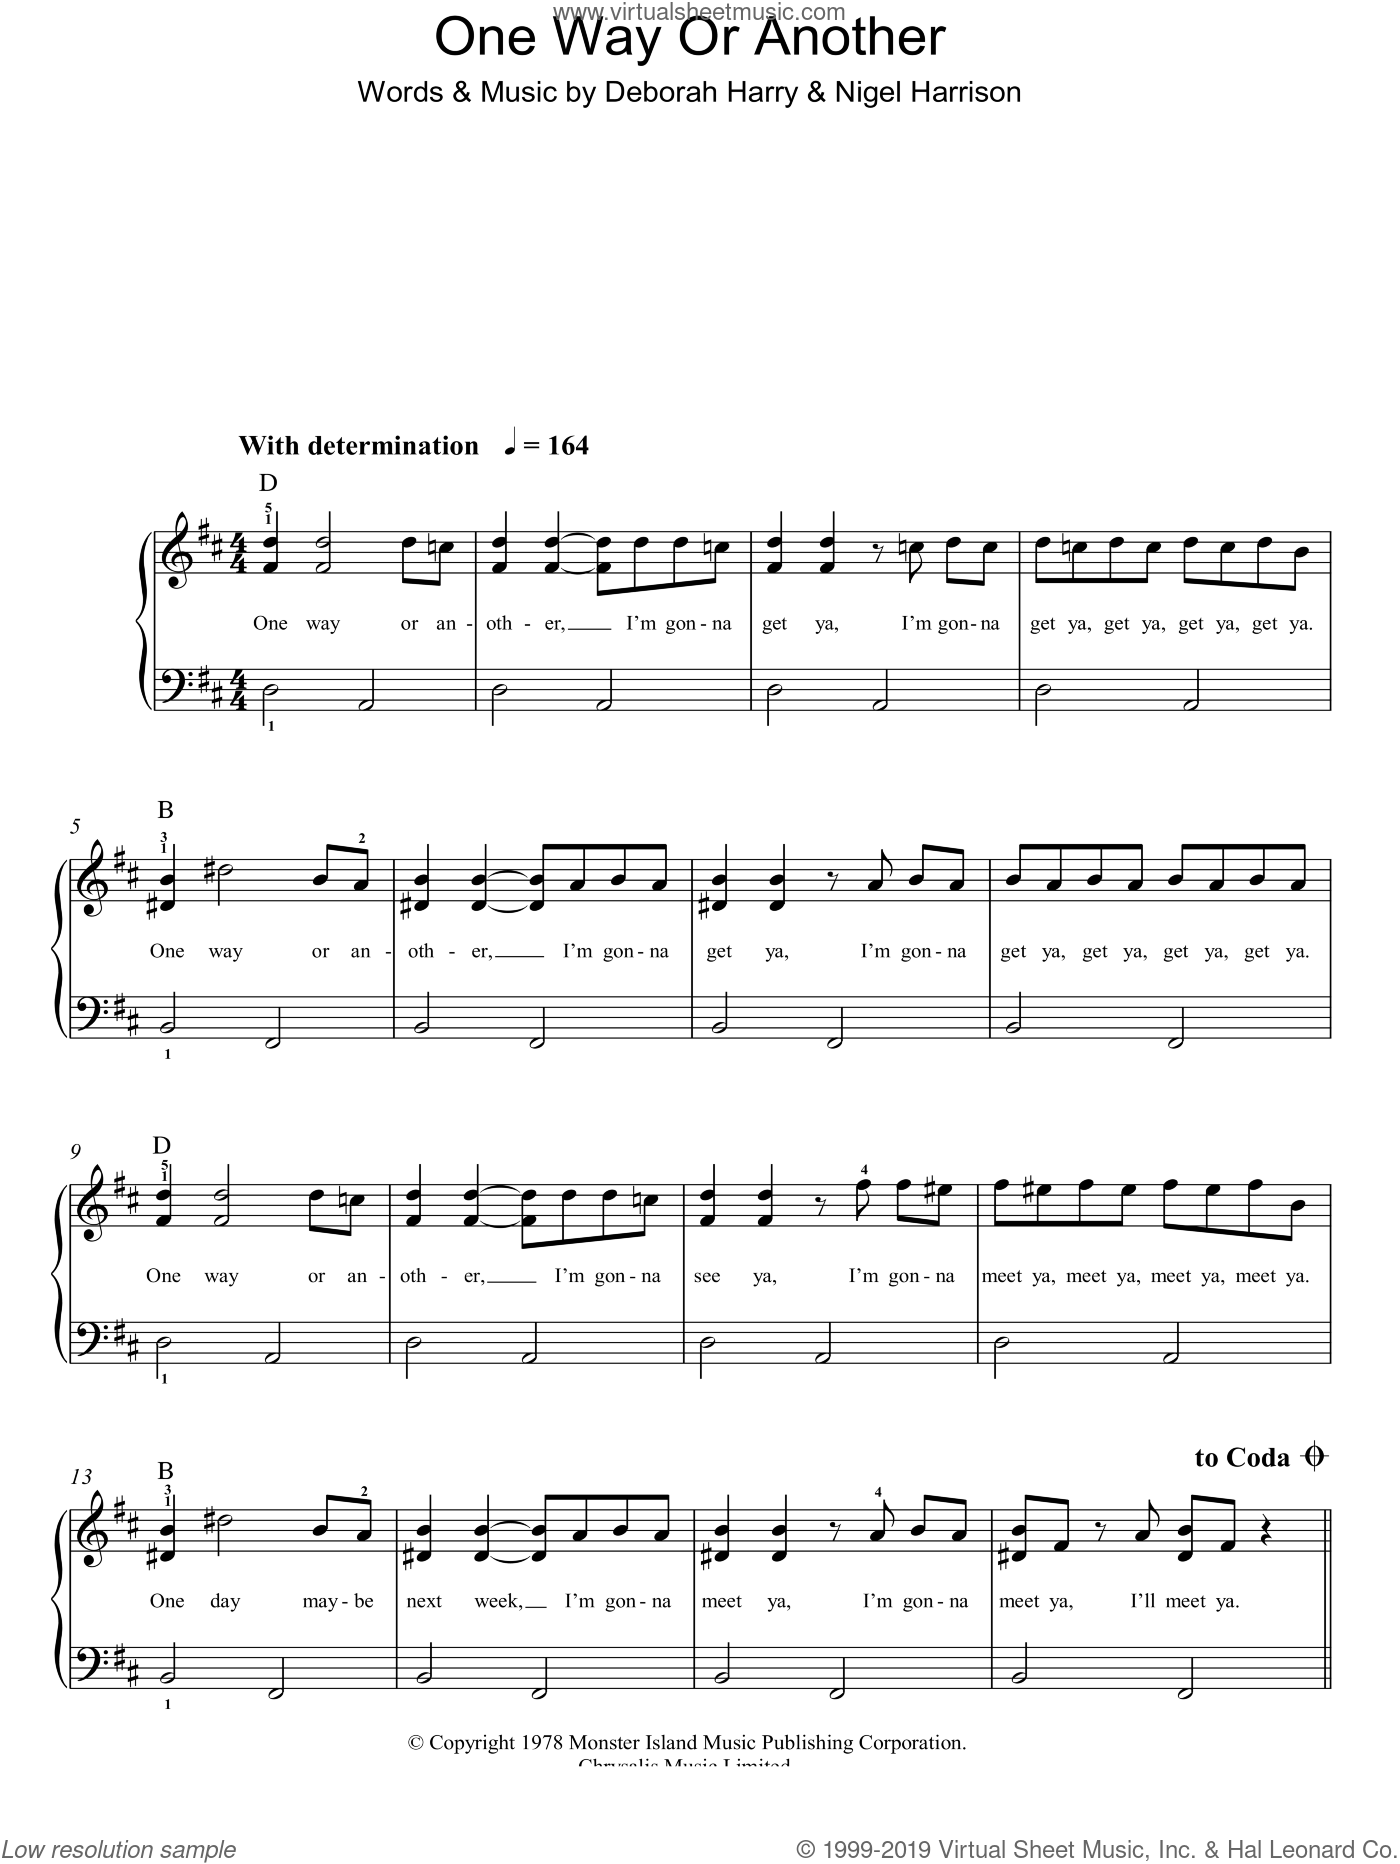 One Way Or Another sheet music for piano solo by Blondie, Deborah Harry and Nigel Harrison, easy skill level